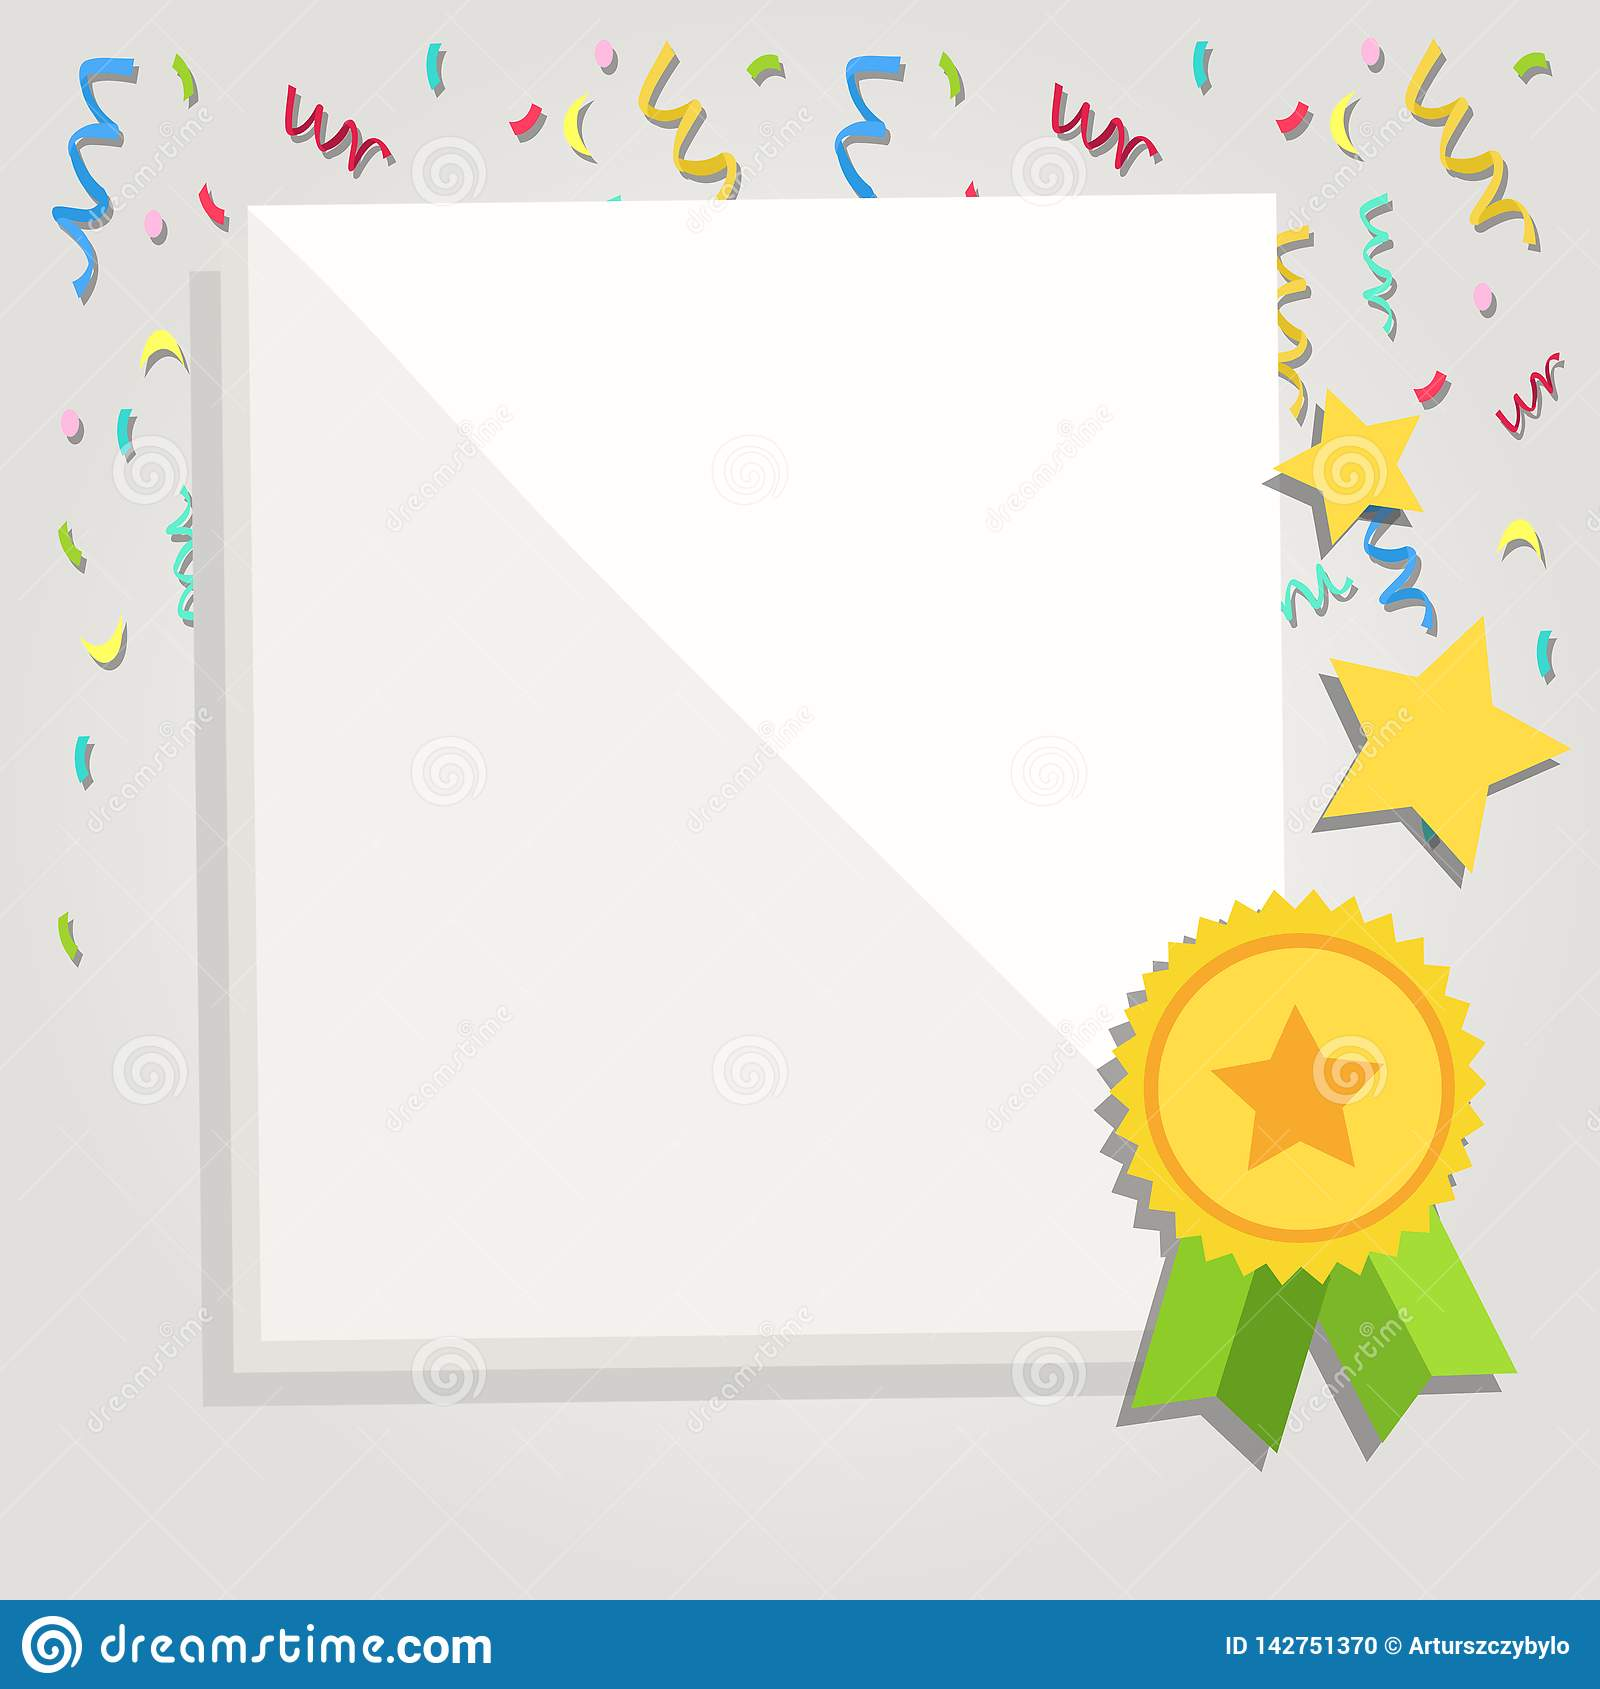 photo about Parchment Paper Printable named White Blank Sheets Of Parchment Paper Stationery With Ribbon